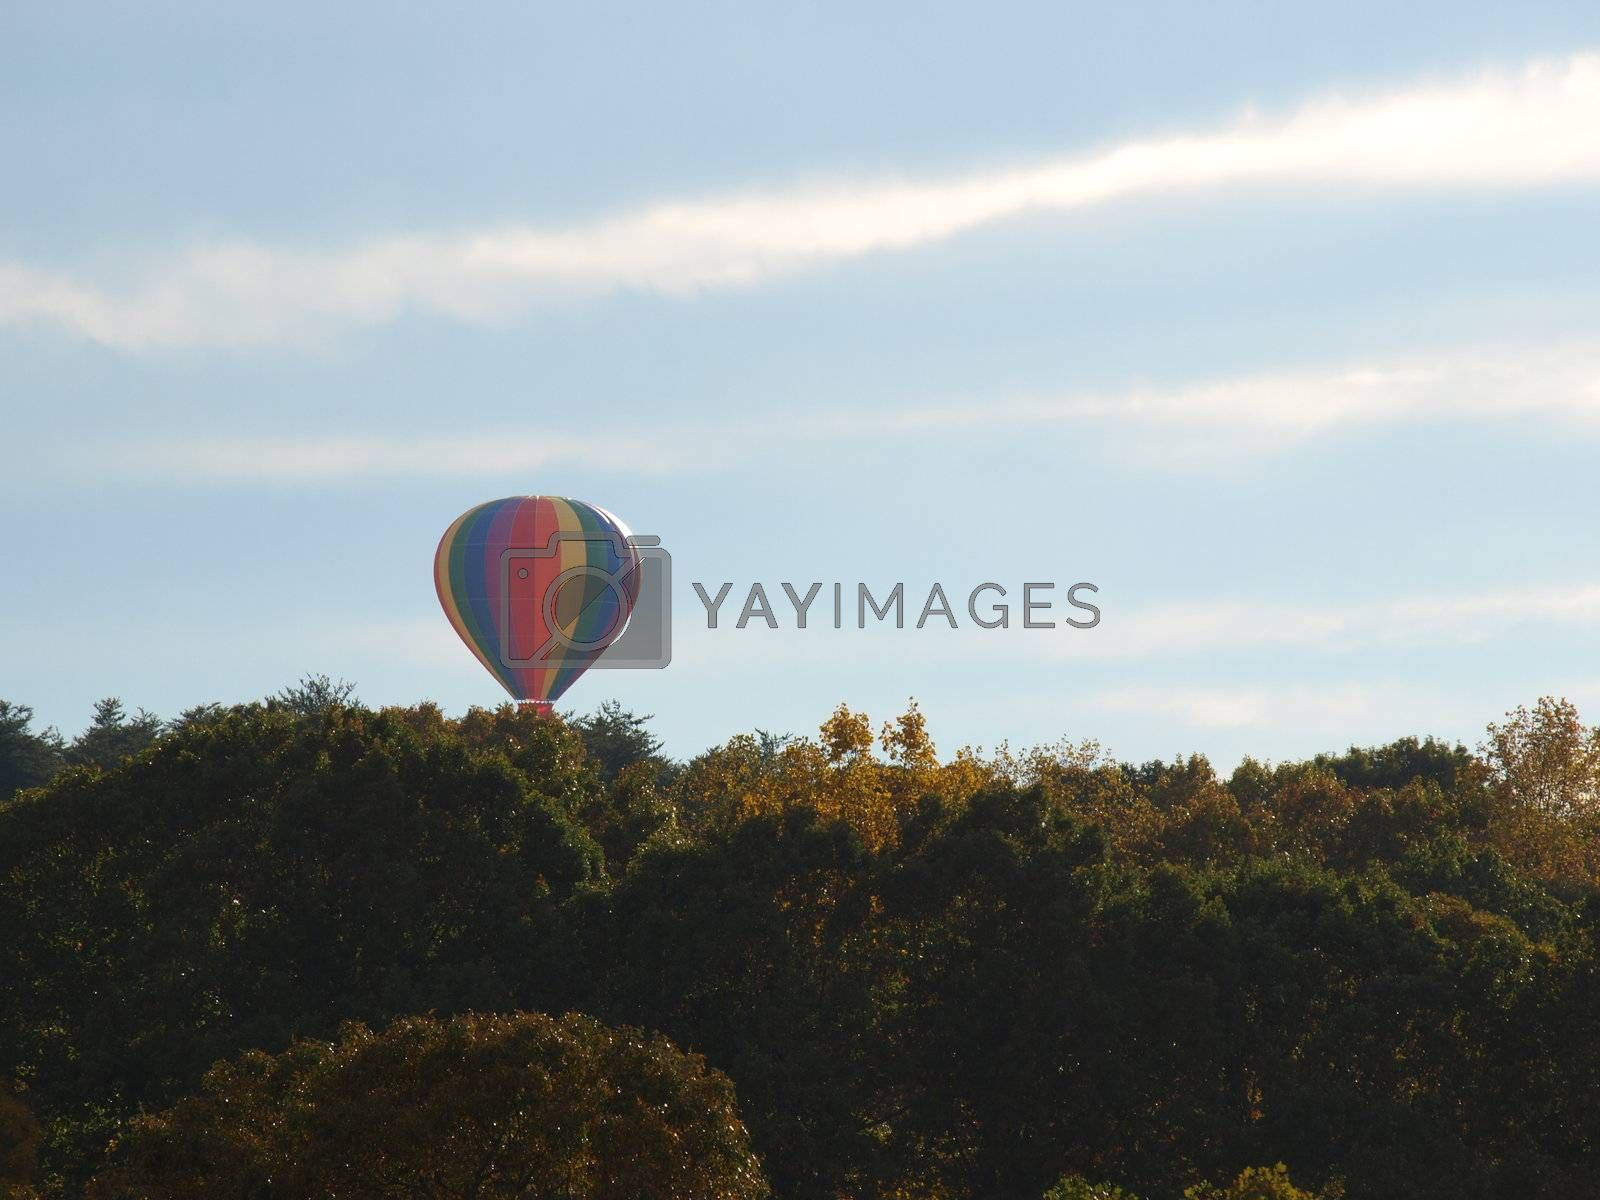 Over the trees. by northwoodsphoto